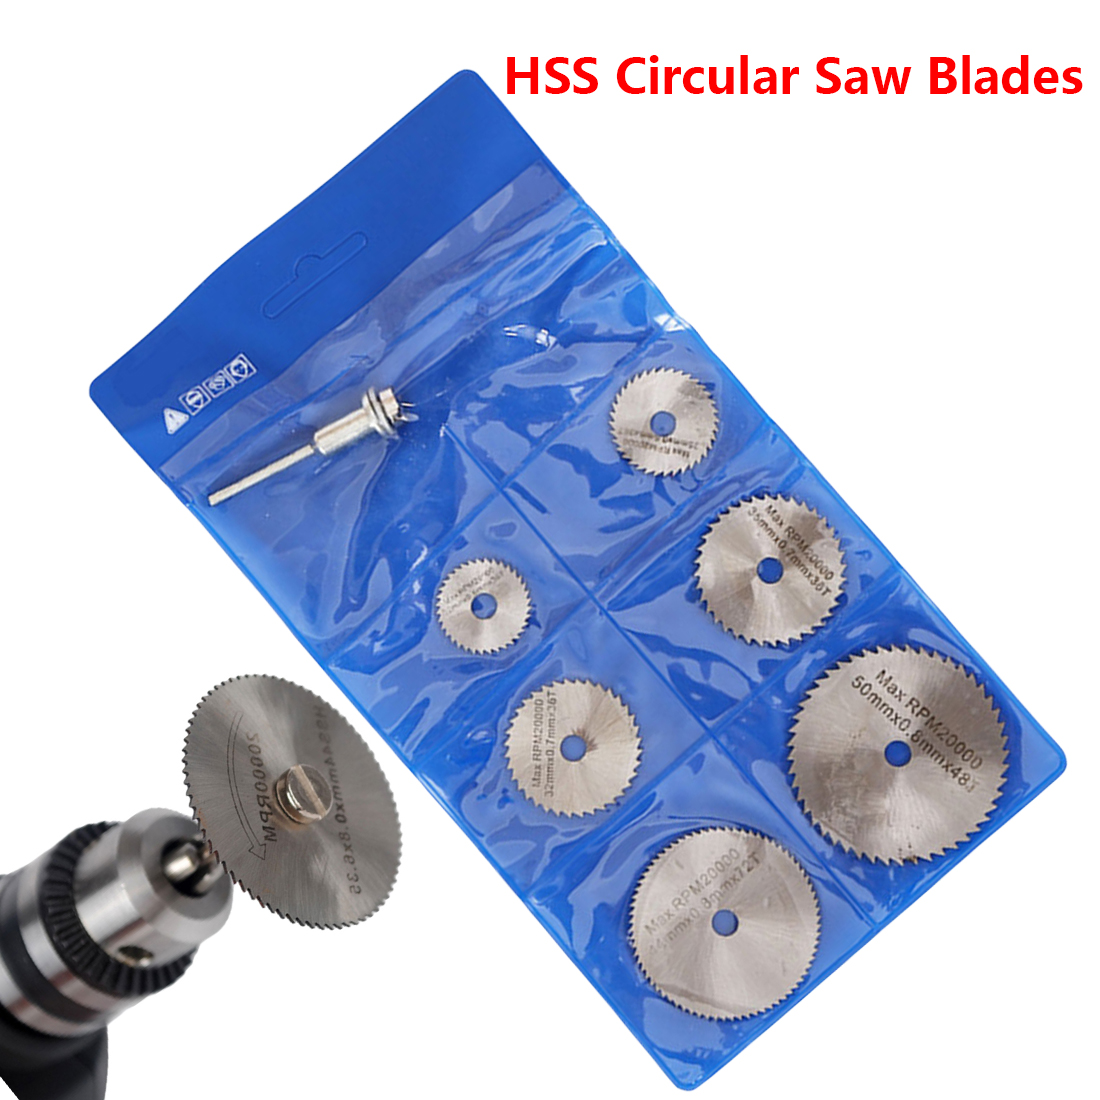 Nº Popular portable band saw blades and get free shipping